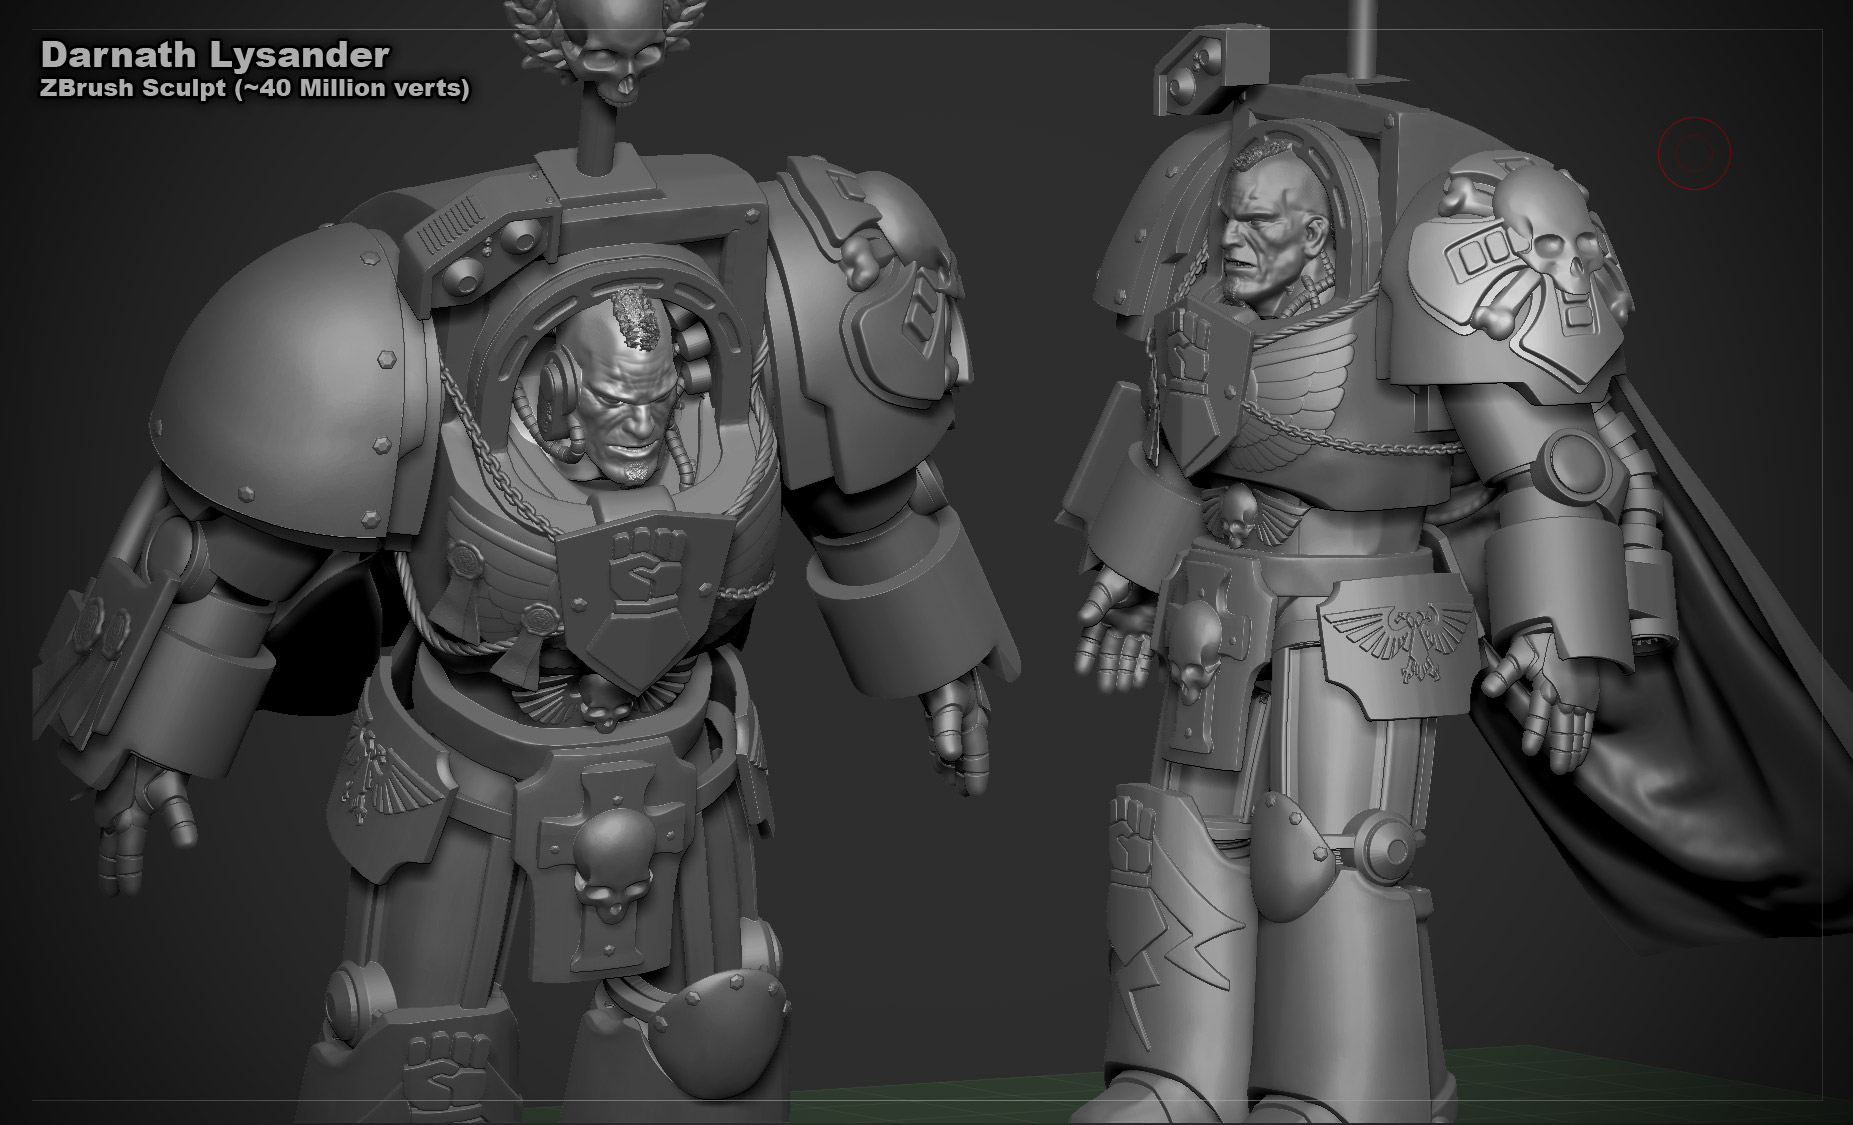 LysanderZBrush